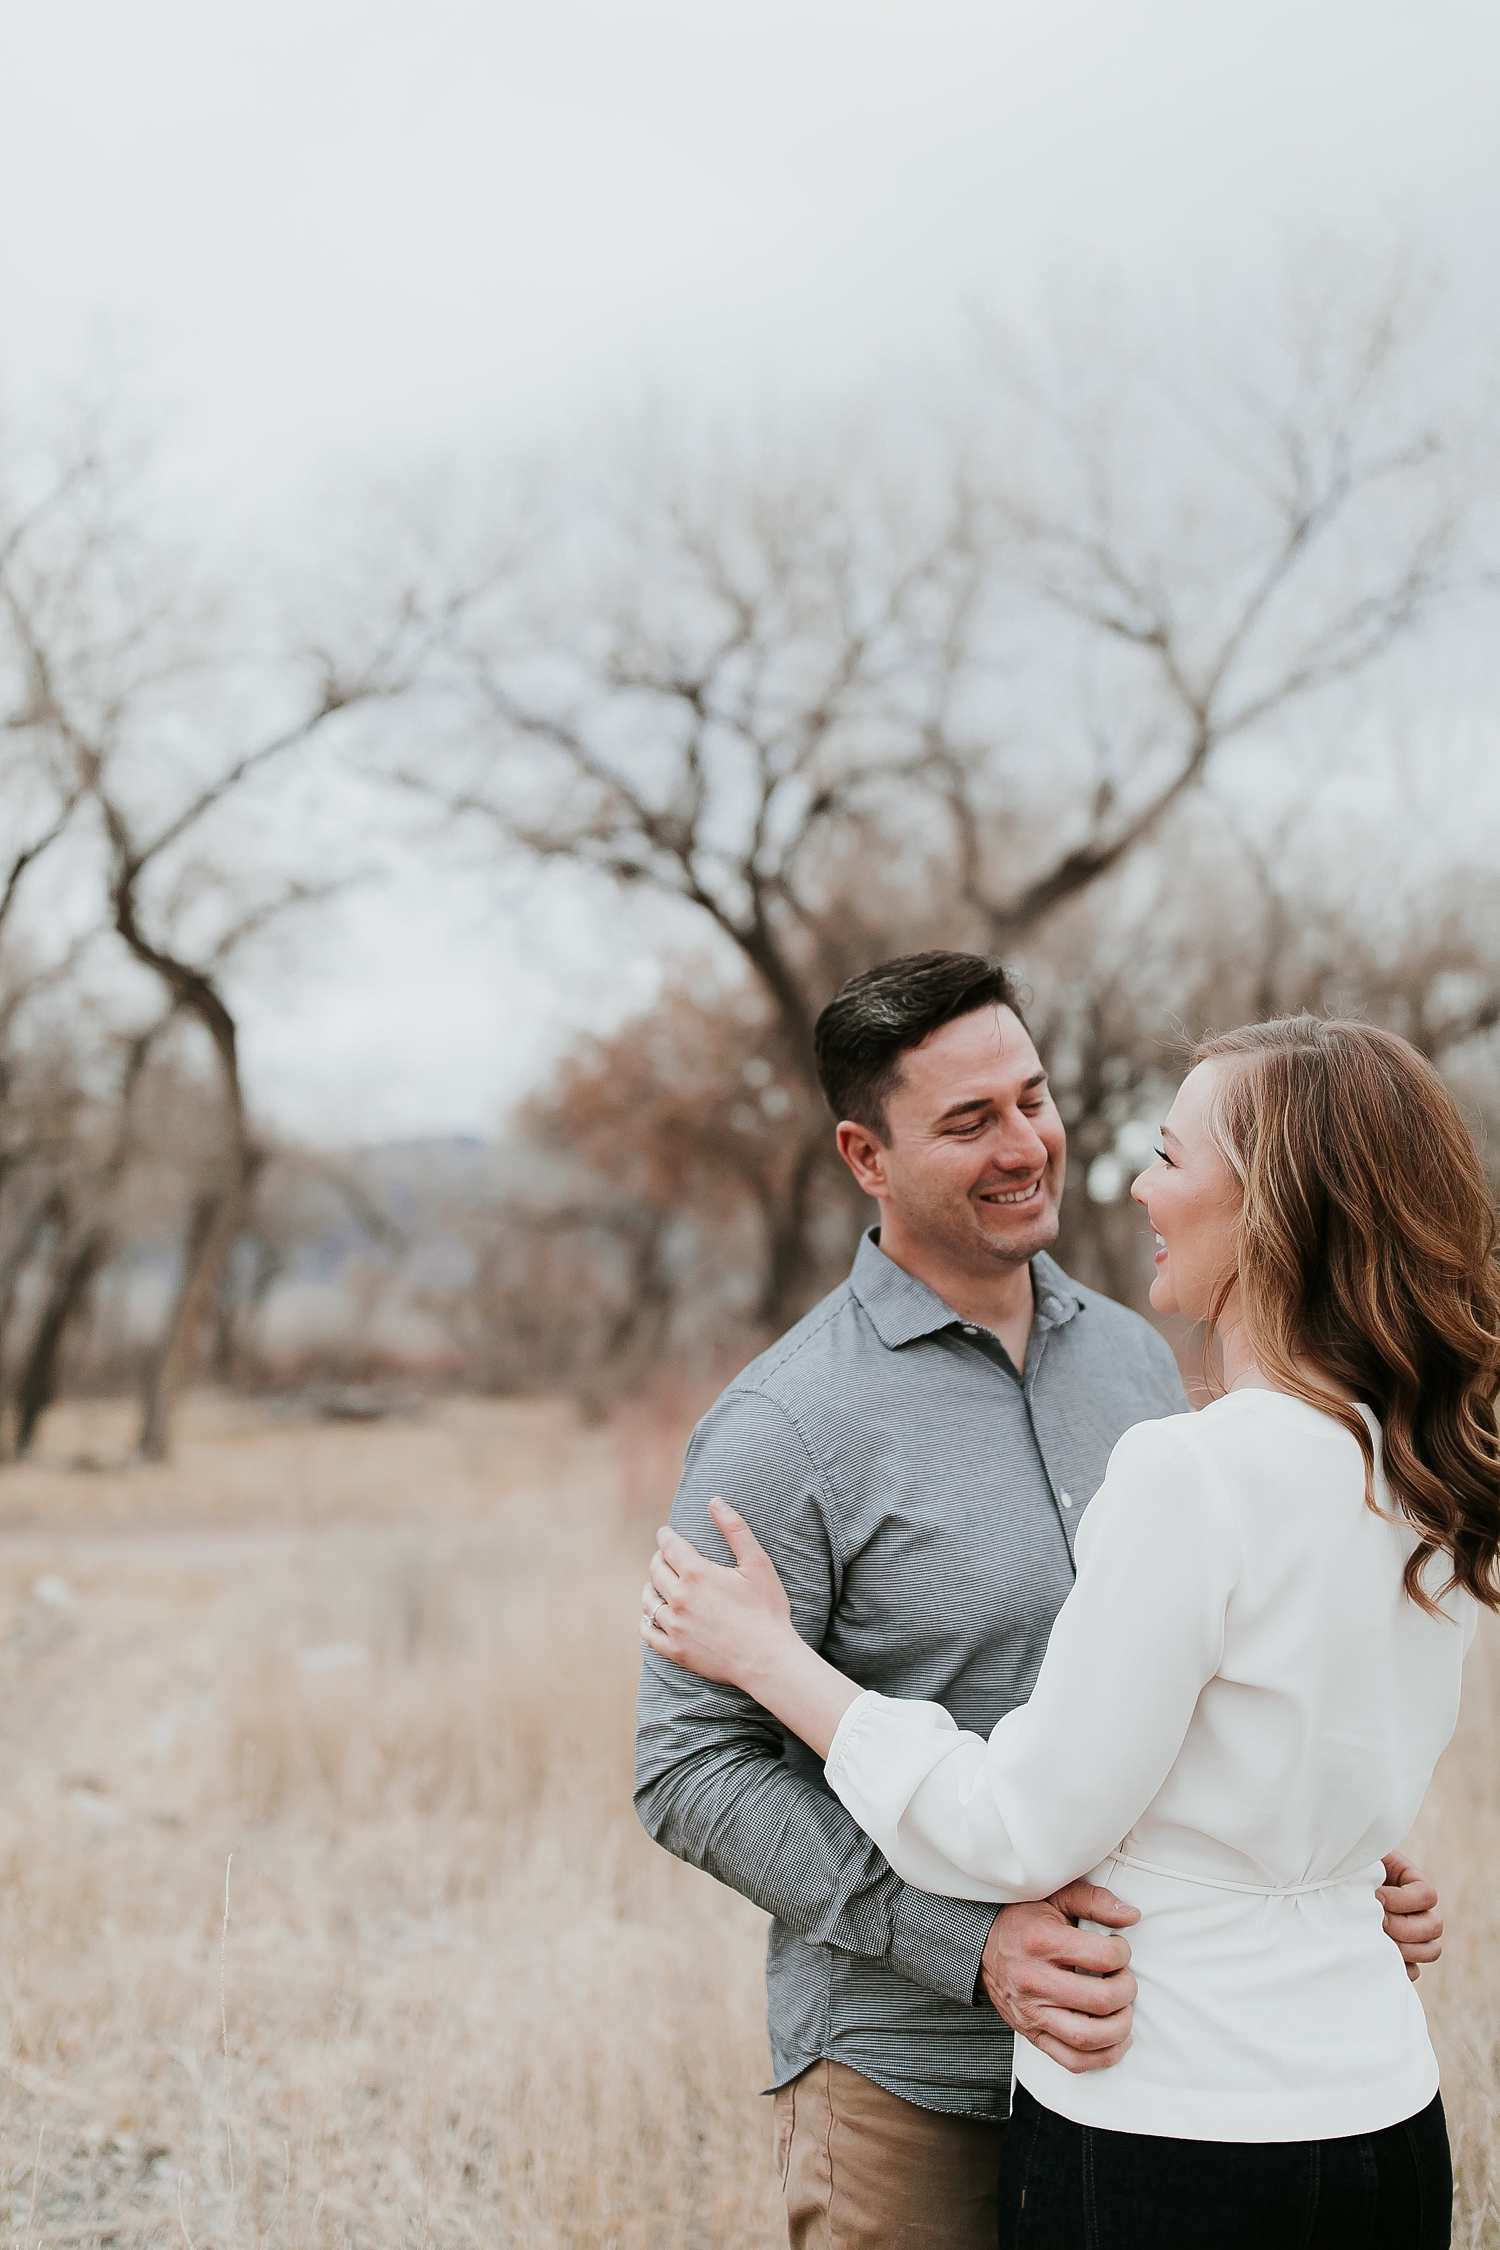 Alicia+lucia+photography+-+albuquerque+wedding+photographer+-+santa+fe+wedding+photography+-+new+mexico+wedding+photographer+-+new+mexico+engagement+-+albuquerque+engagement+-+spring+new+mexico+engagement+-+bosque+engagement_0016.jpg